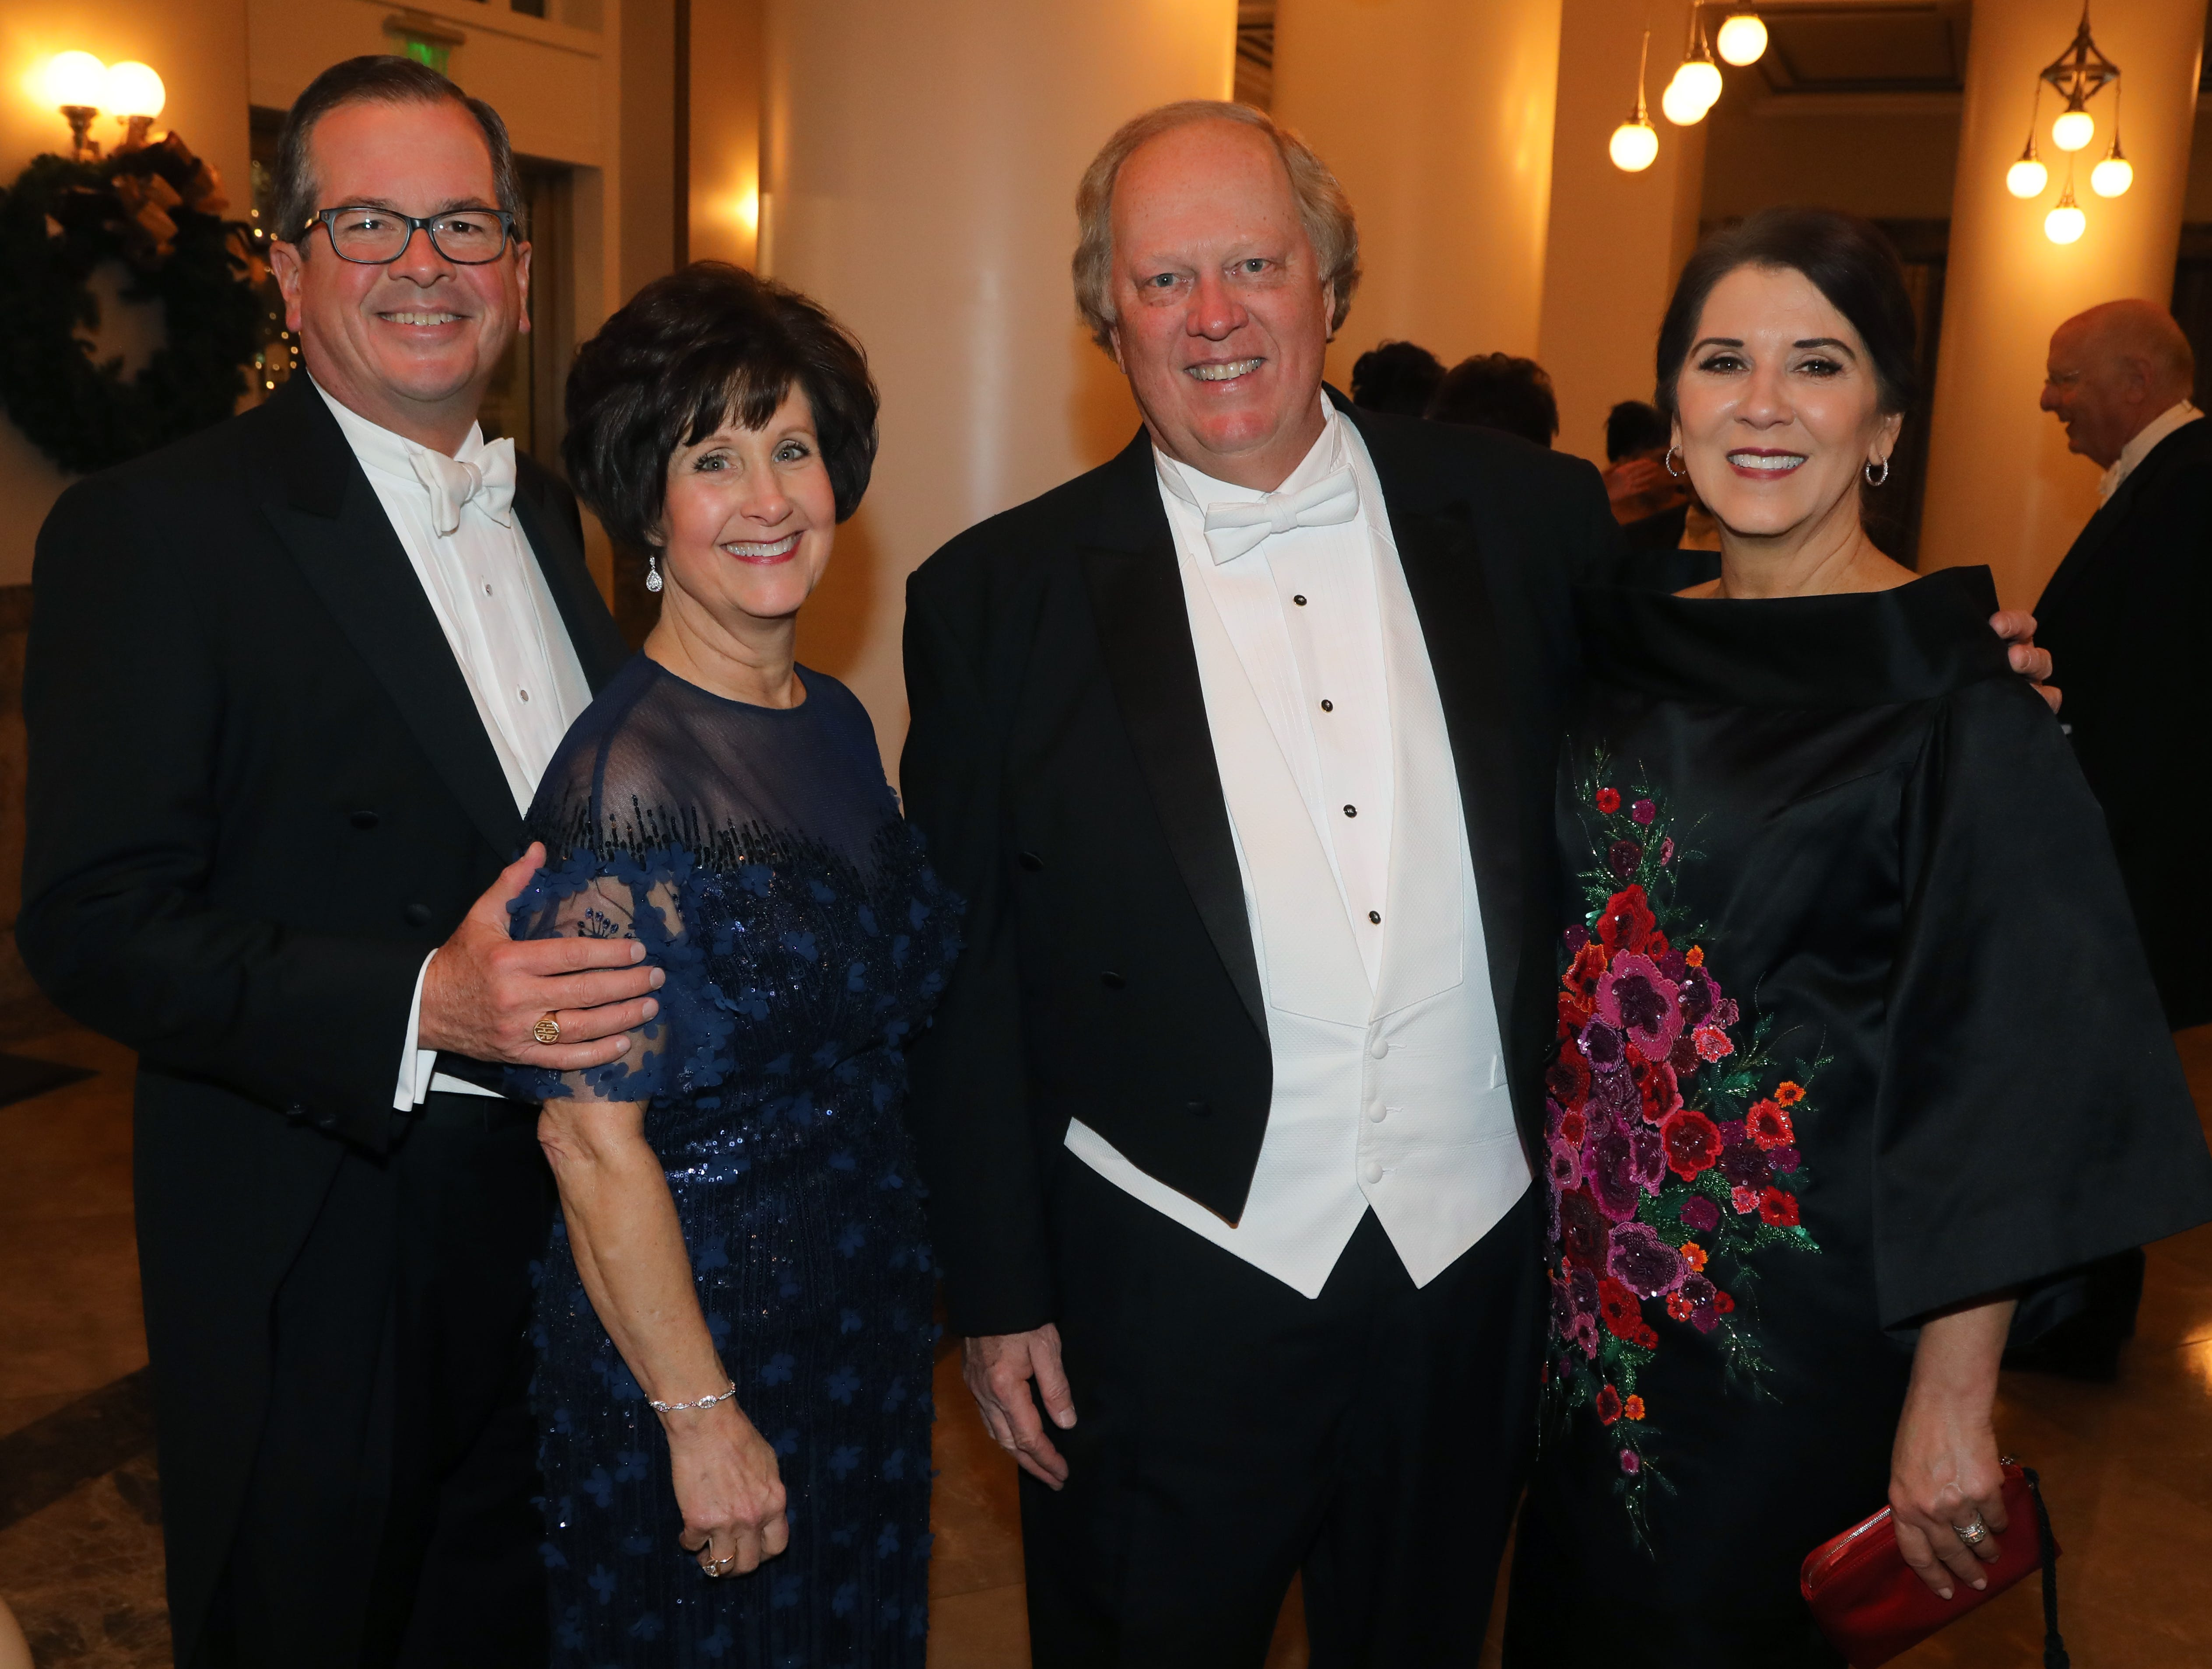 Ed and Nancy Goodrich, David and Janice Elliot Morgan at the 34th annual Symphony Ball on Saturday, December 8, 2018, at Schermerhorn Symphony Center.